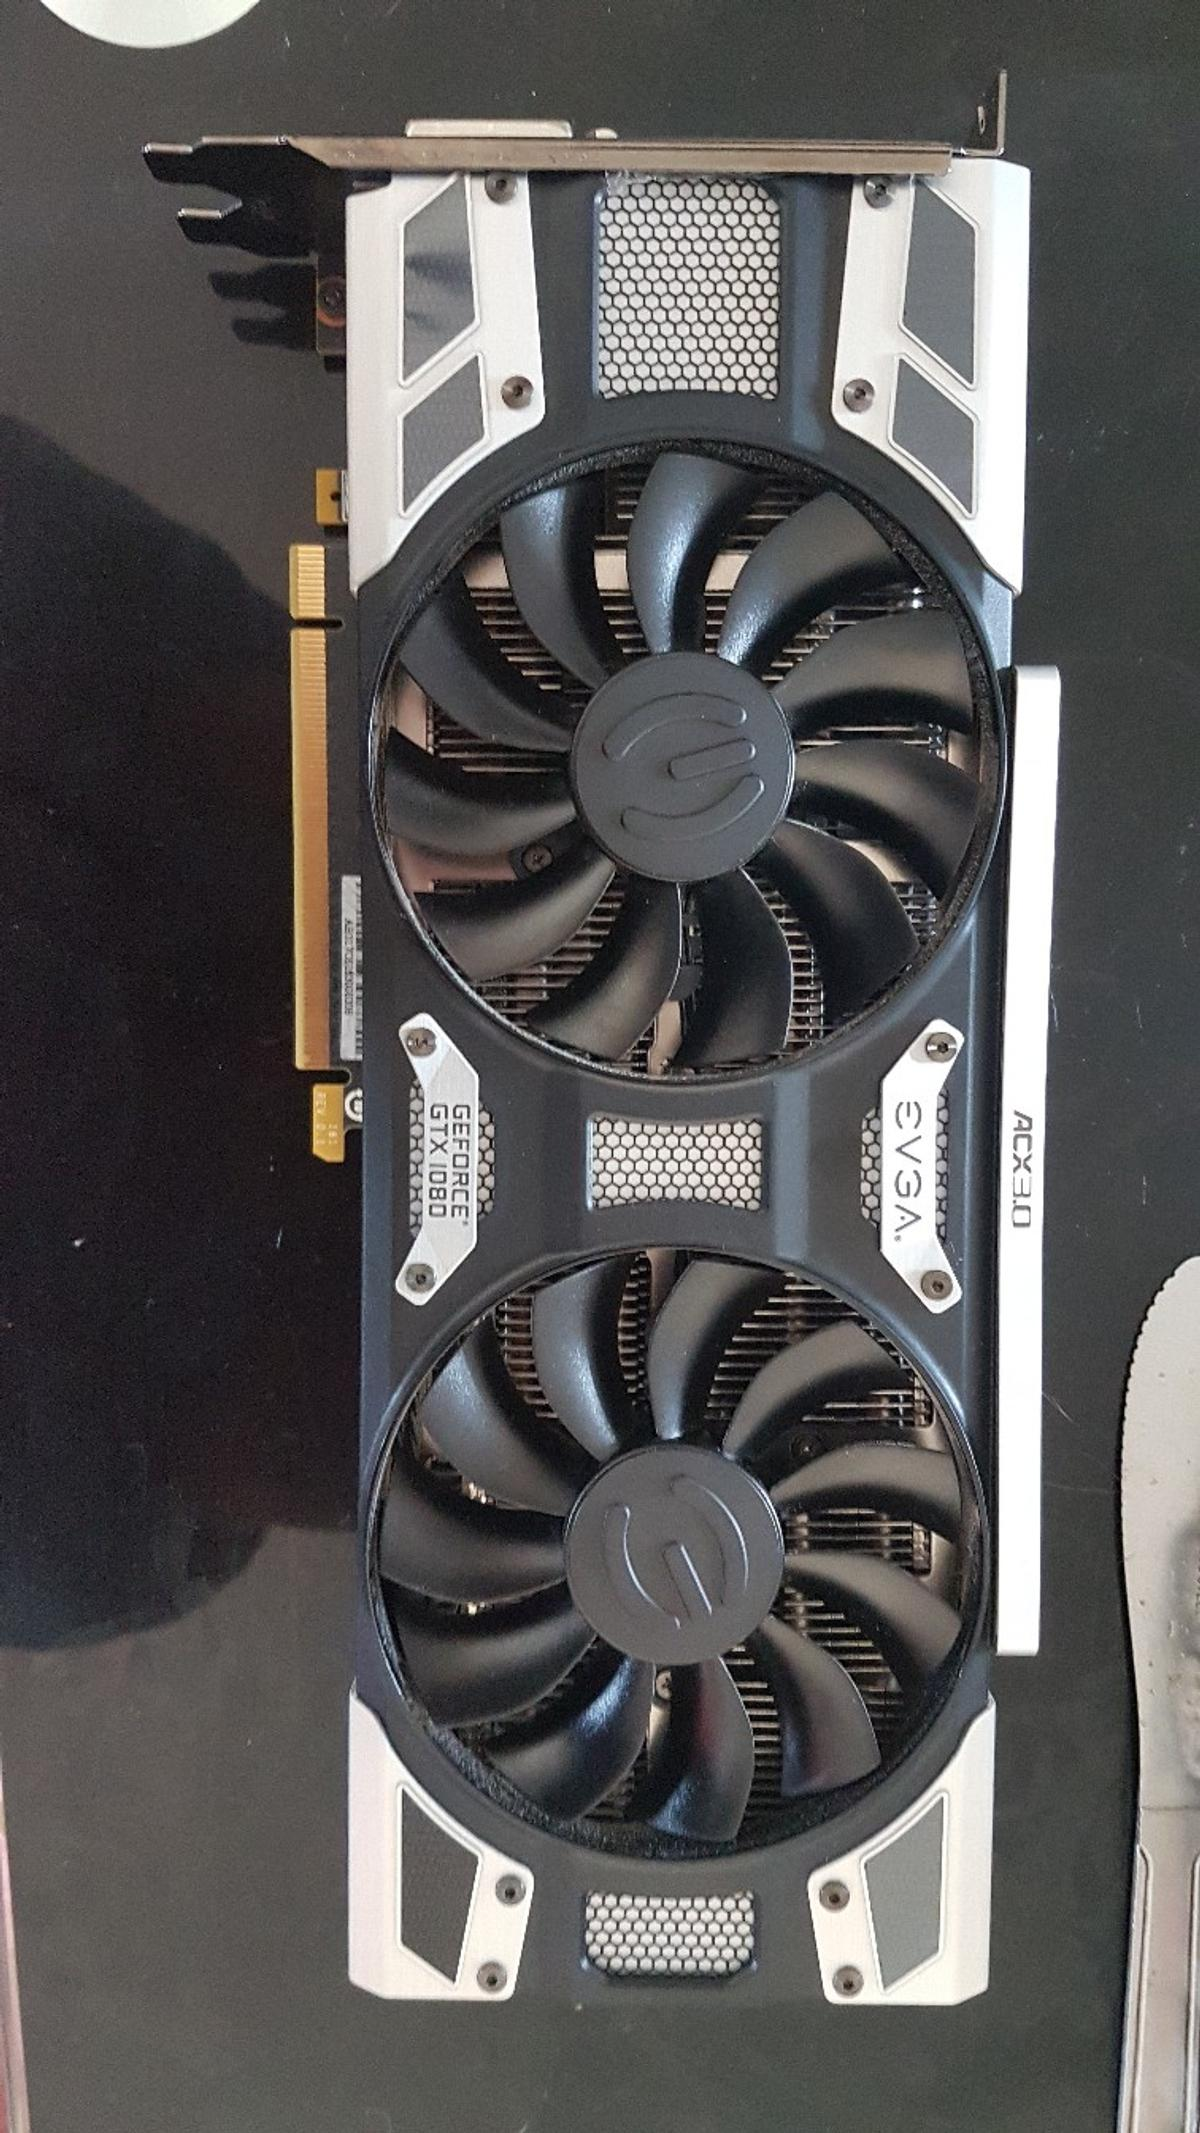 EVGA GTX 1080 SC 8GB Nvidia graphics card in S44 North East